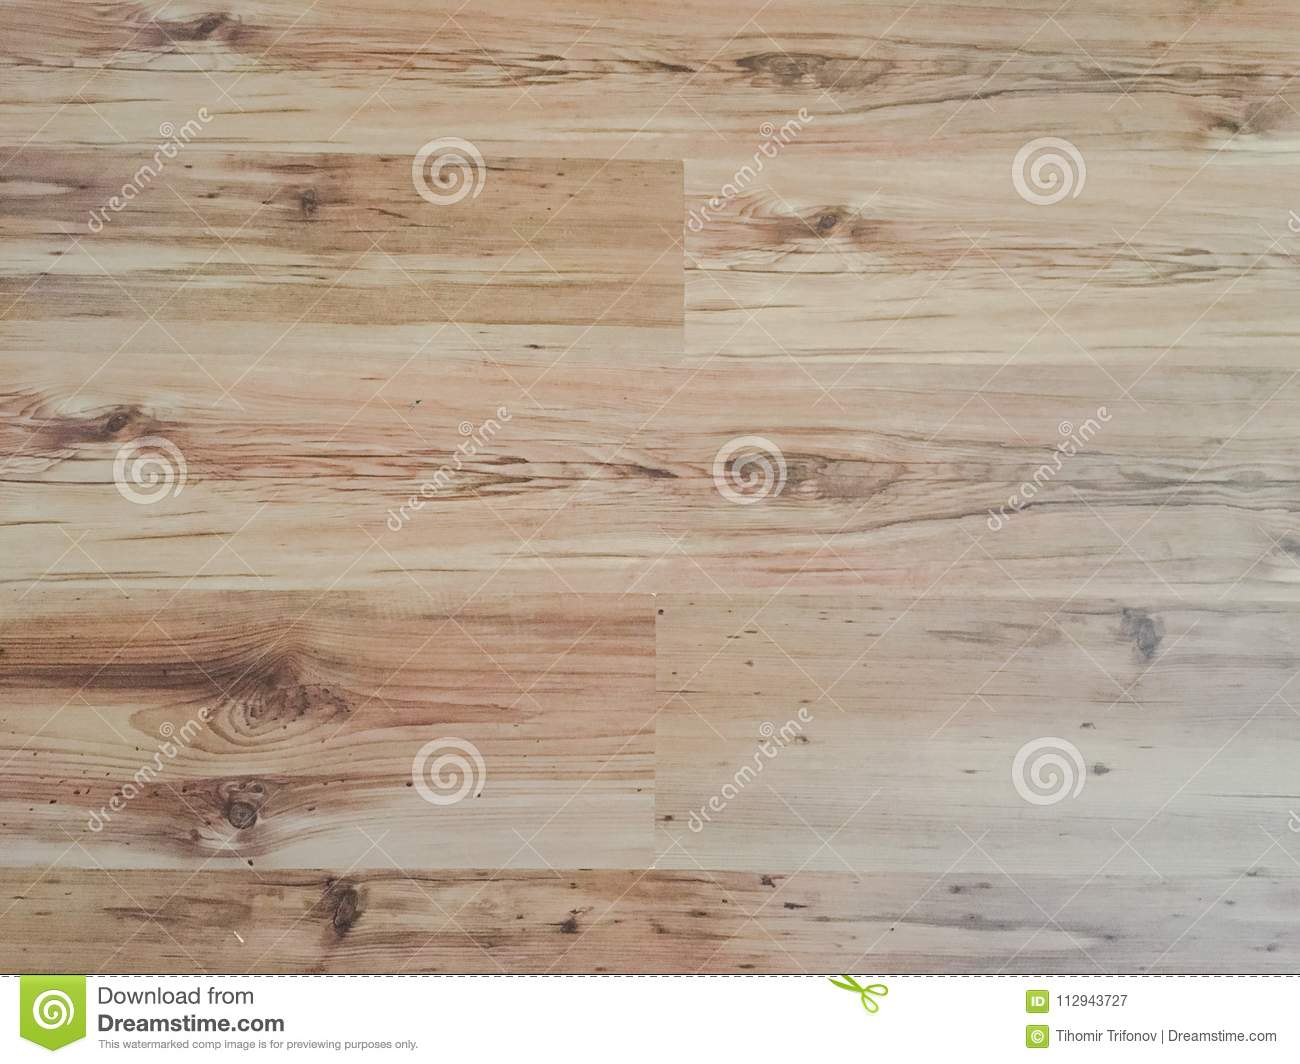 Light soft wood floor surface texture as background, wooden parquet. Old grunge washed oak laminate pattern top view.